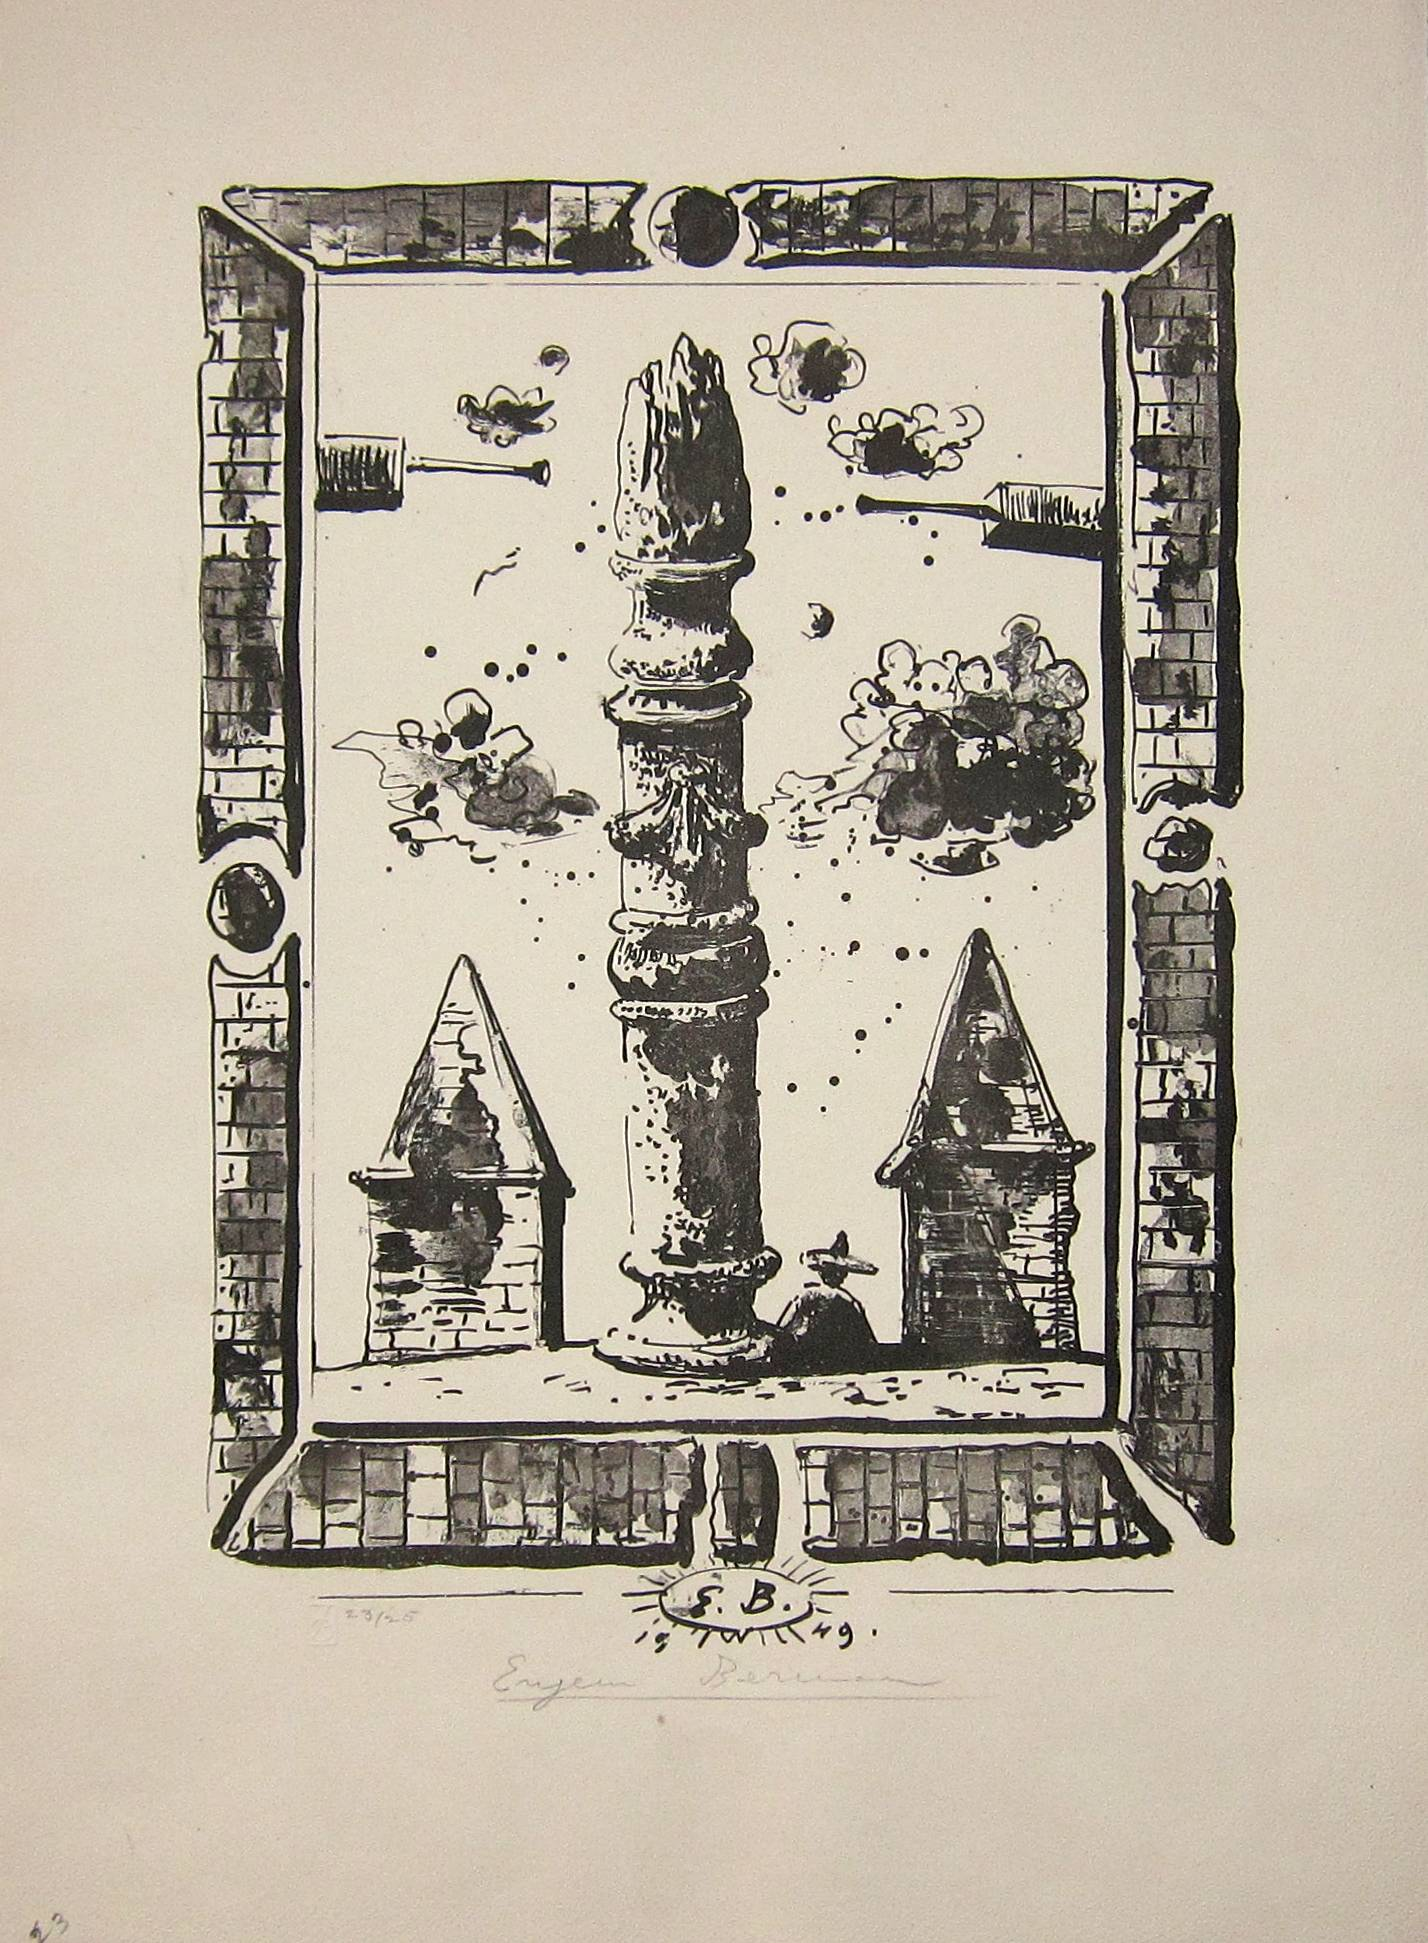 Lot 53 - EUGENE BERMAN [1899-1972]. Flaming Column, 1949. lithograph, edition of 25 [23/25], signed in